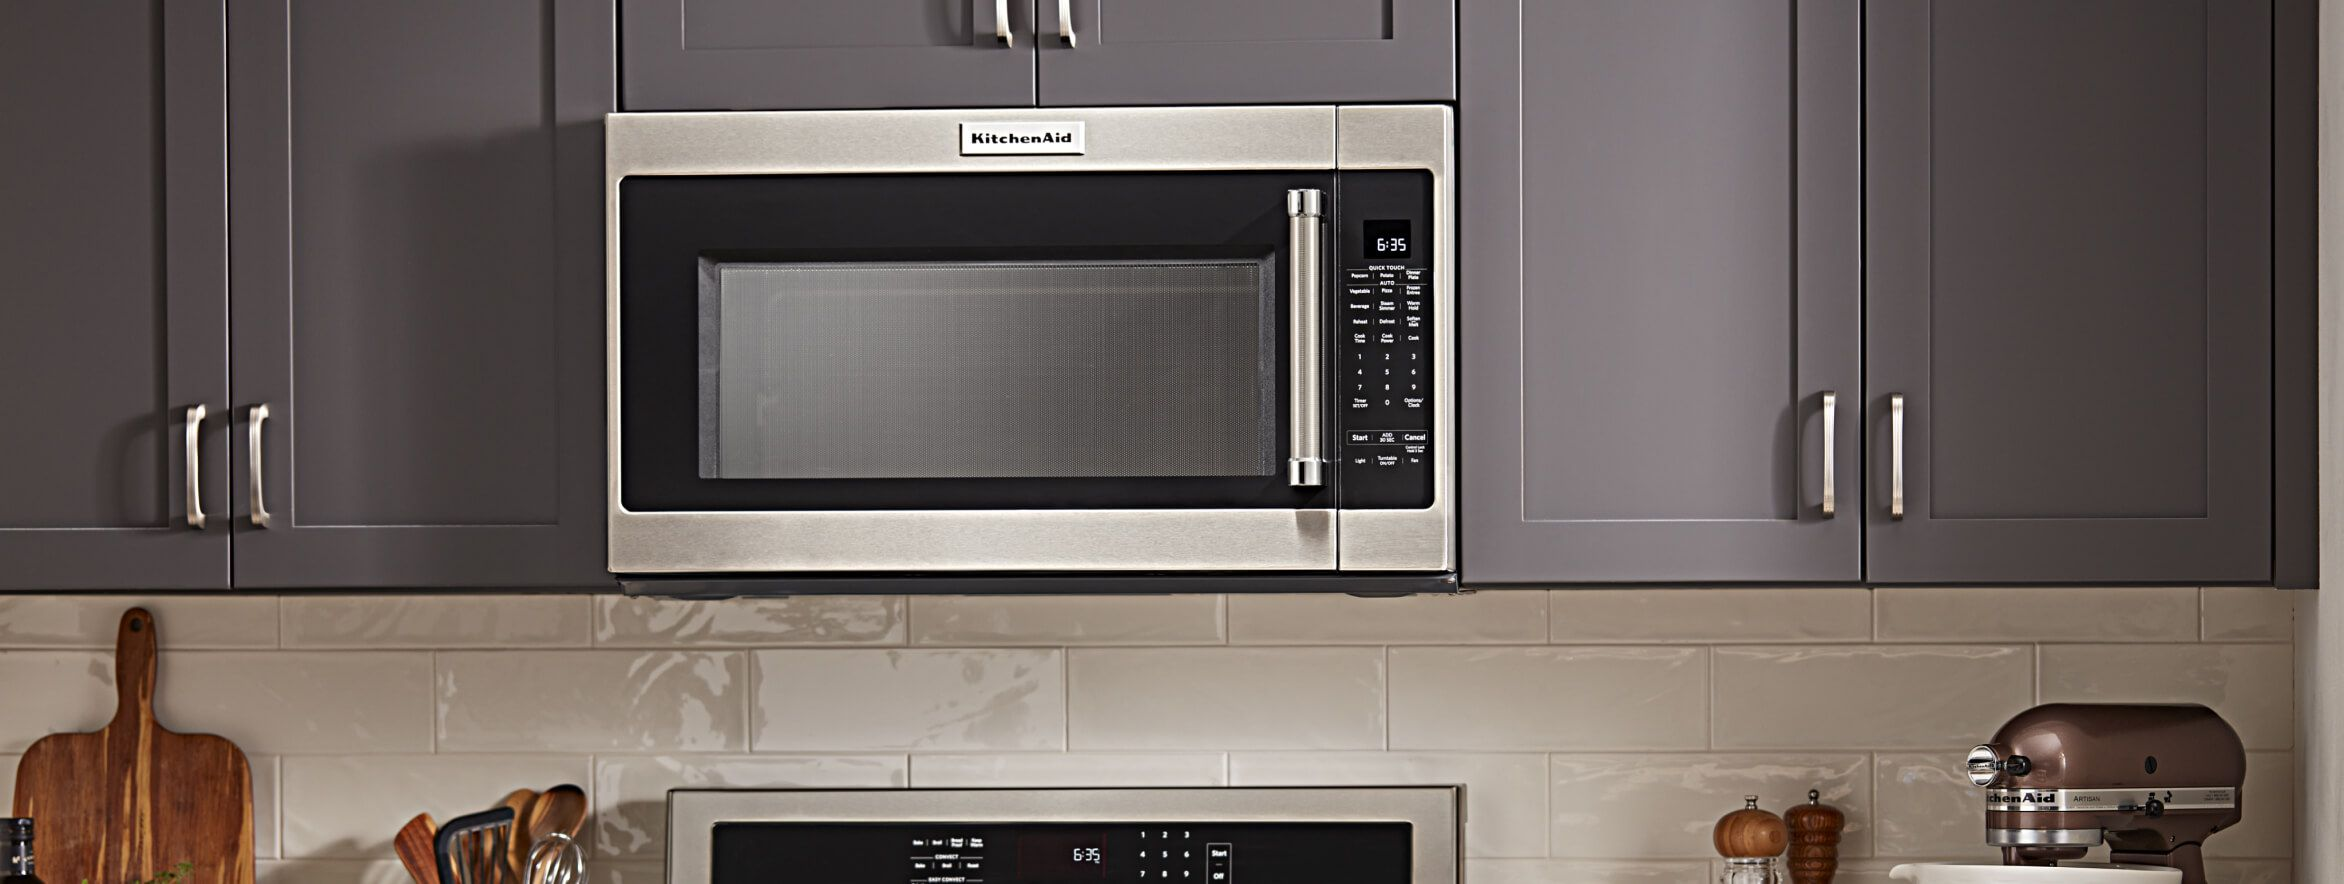 Over-the-range microwave in grey cabinets